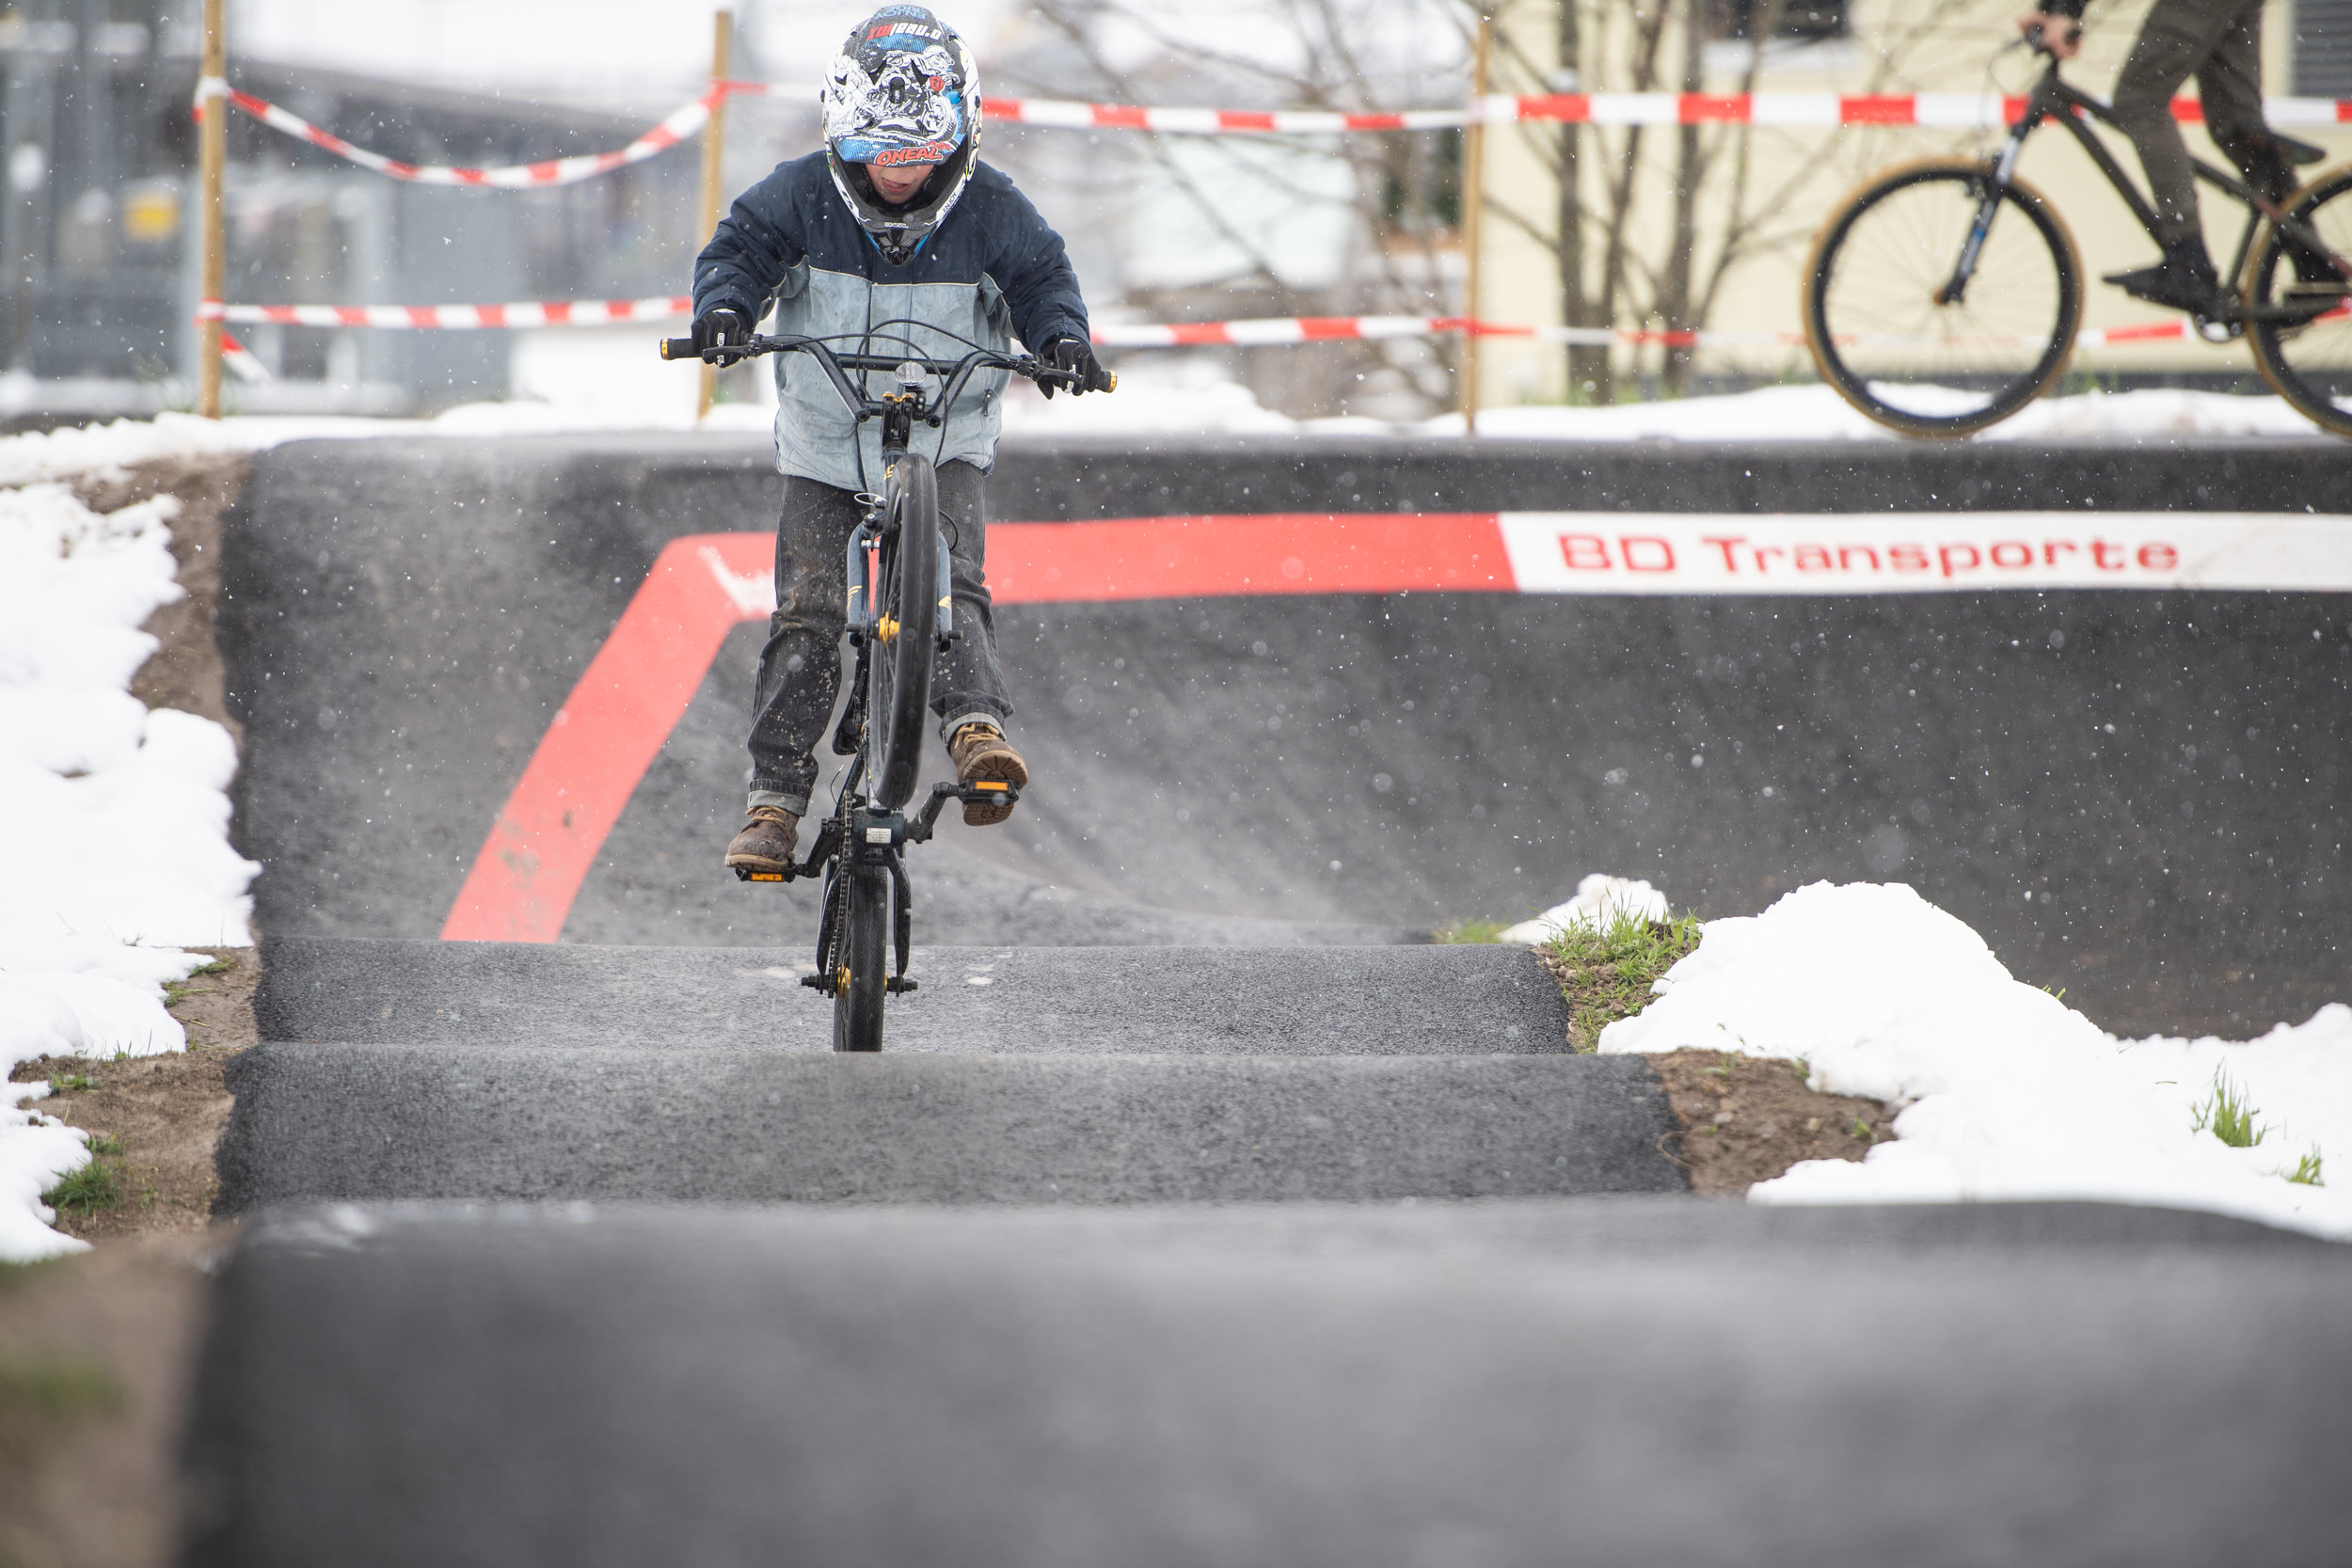 velosolutions_asphalt_pumptrack_schufheim_switzerland_dominik_bosshard-9676_47729121052_o.jpg